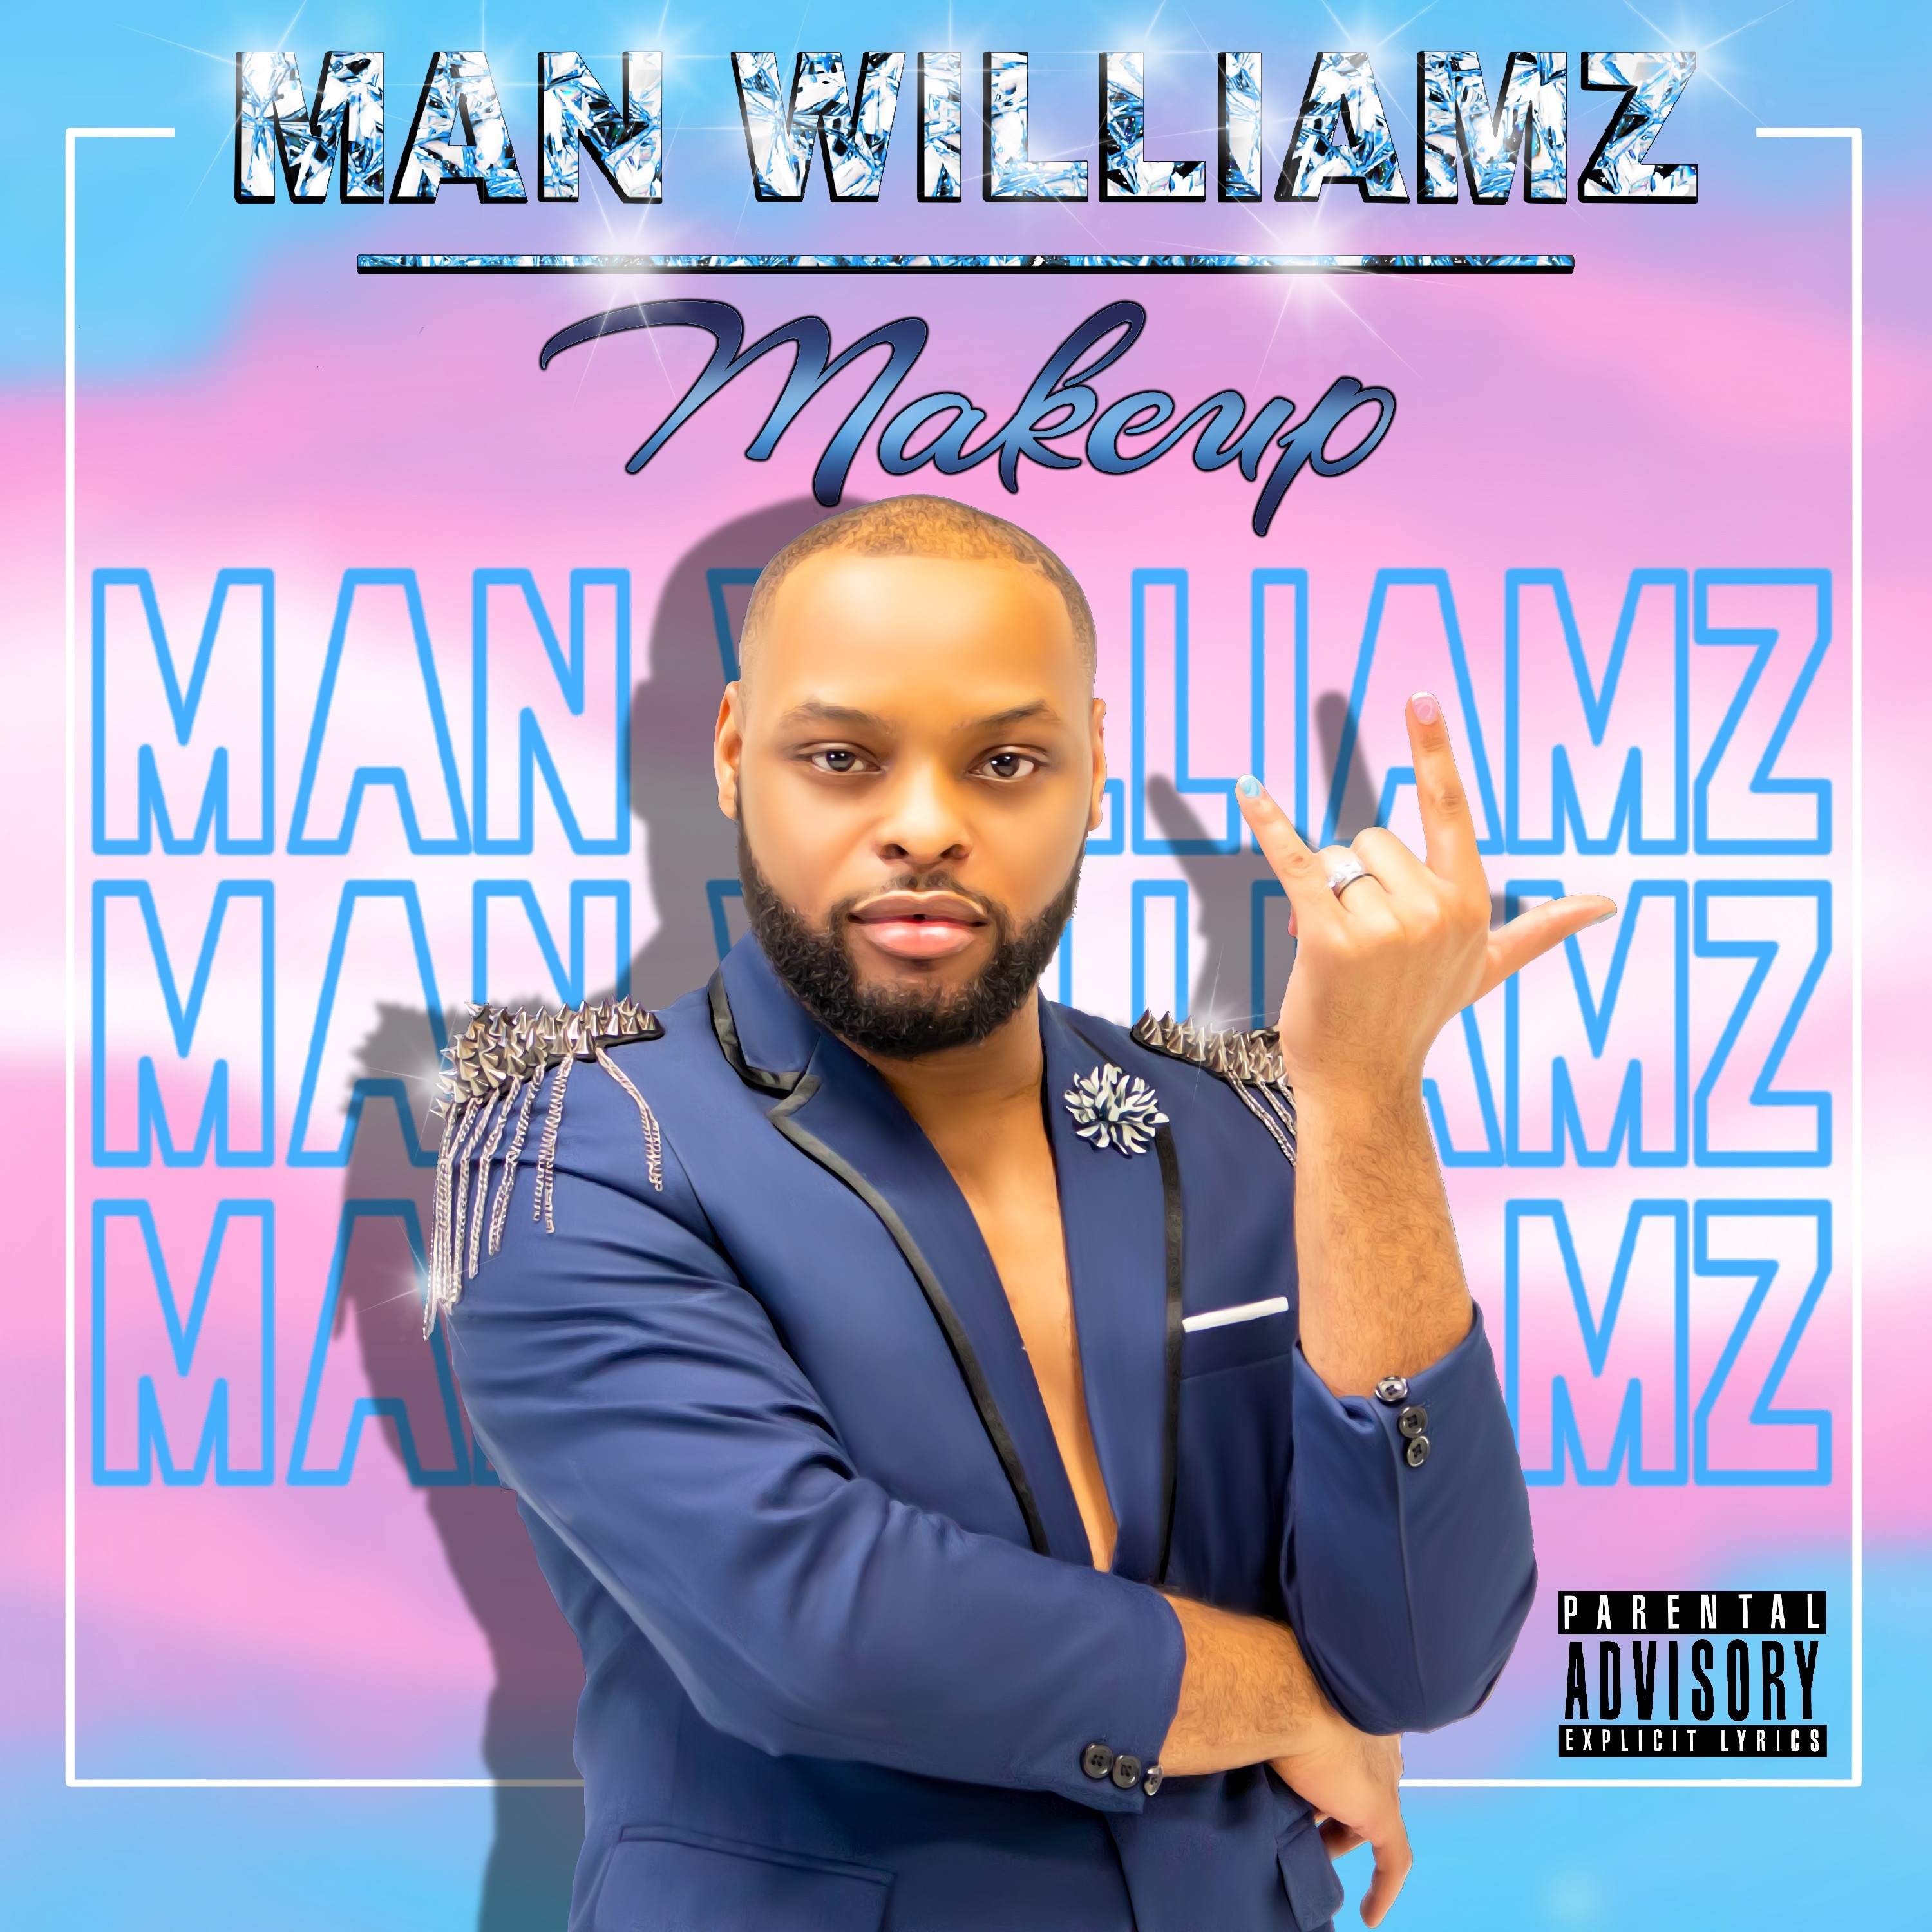 Art for MAKEUP by MAN Williamz